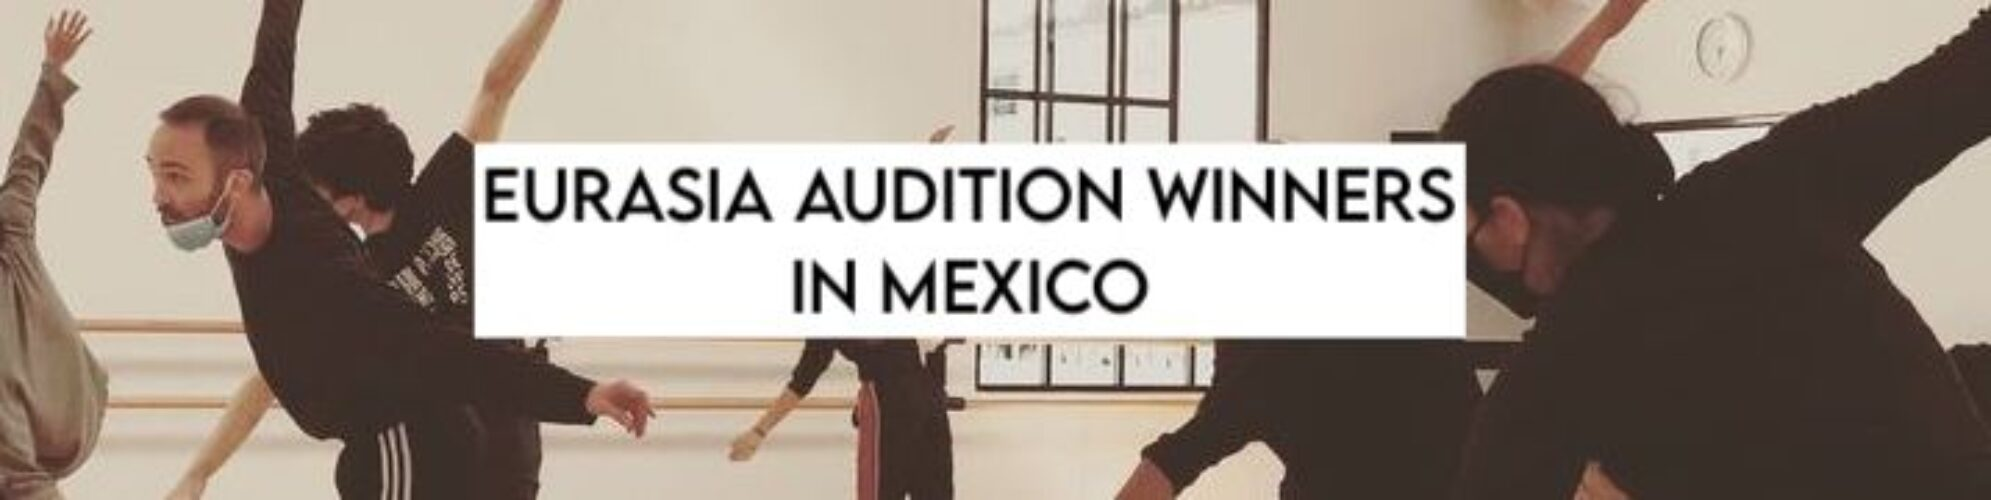 Mexico Auditions1